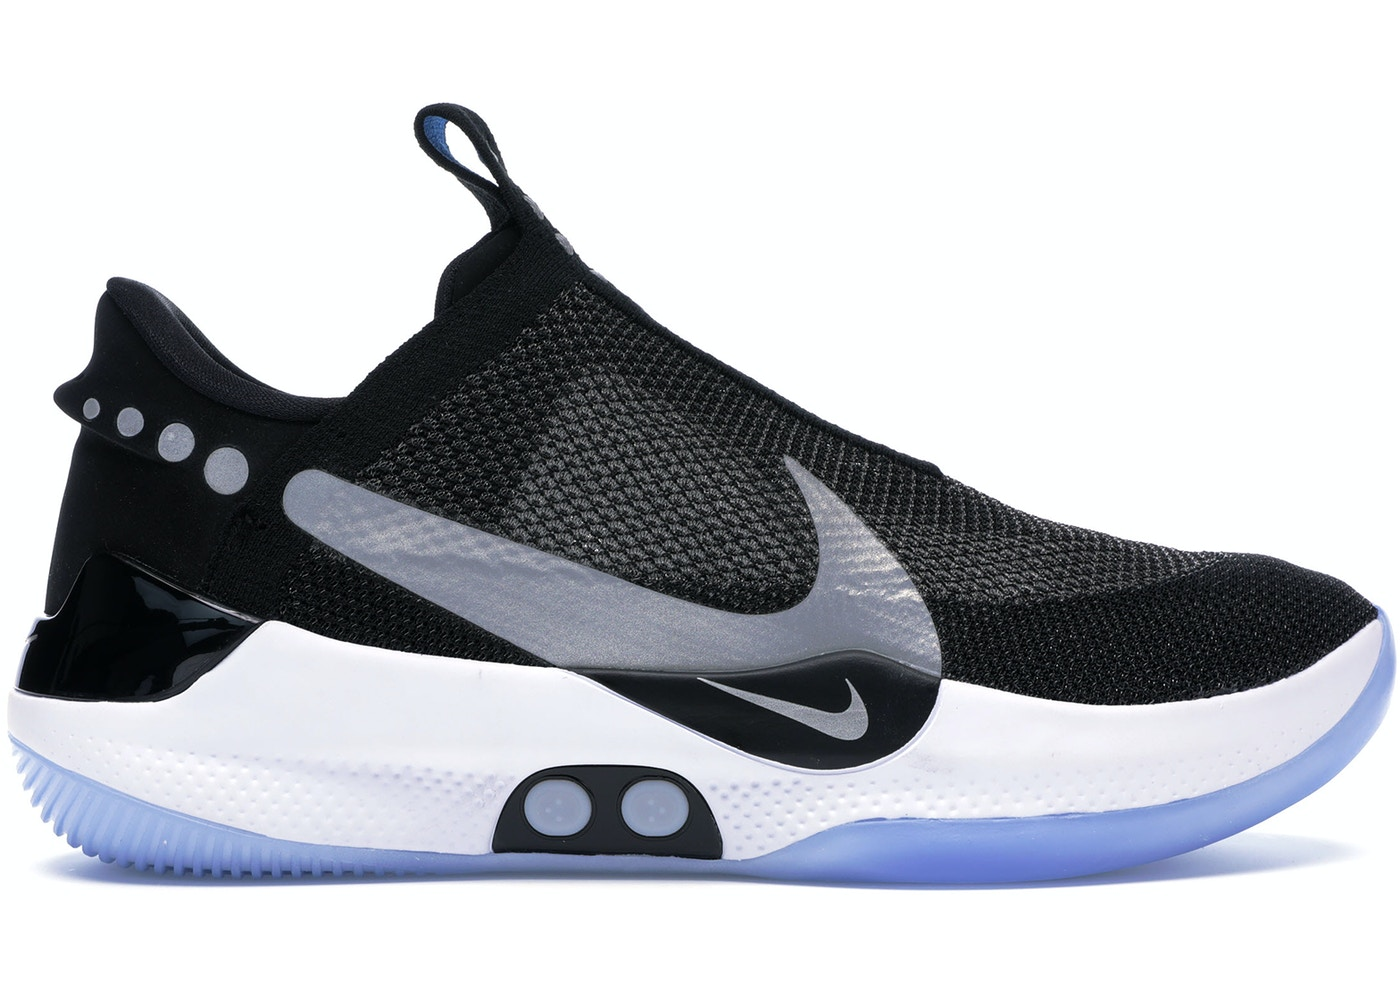 939a37e93674 Buy Nike Shoes   Deadstock Sneakers